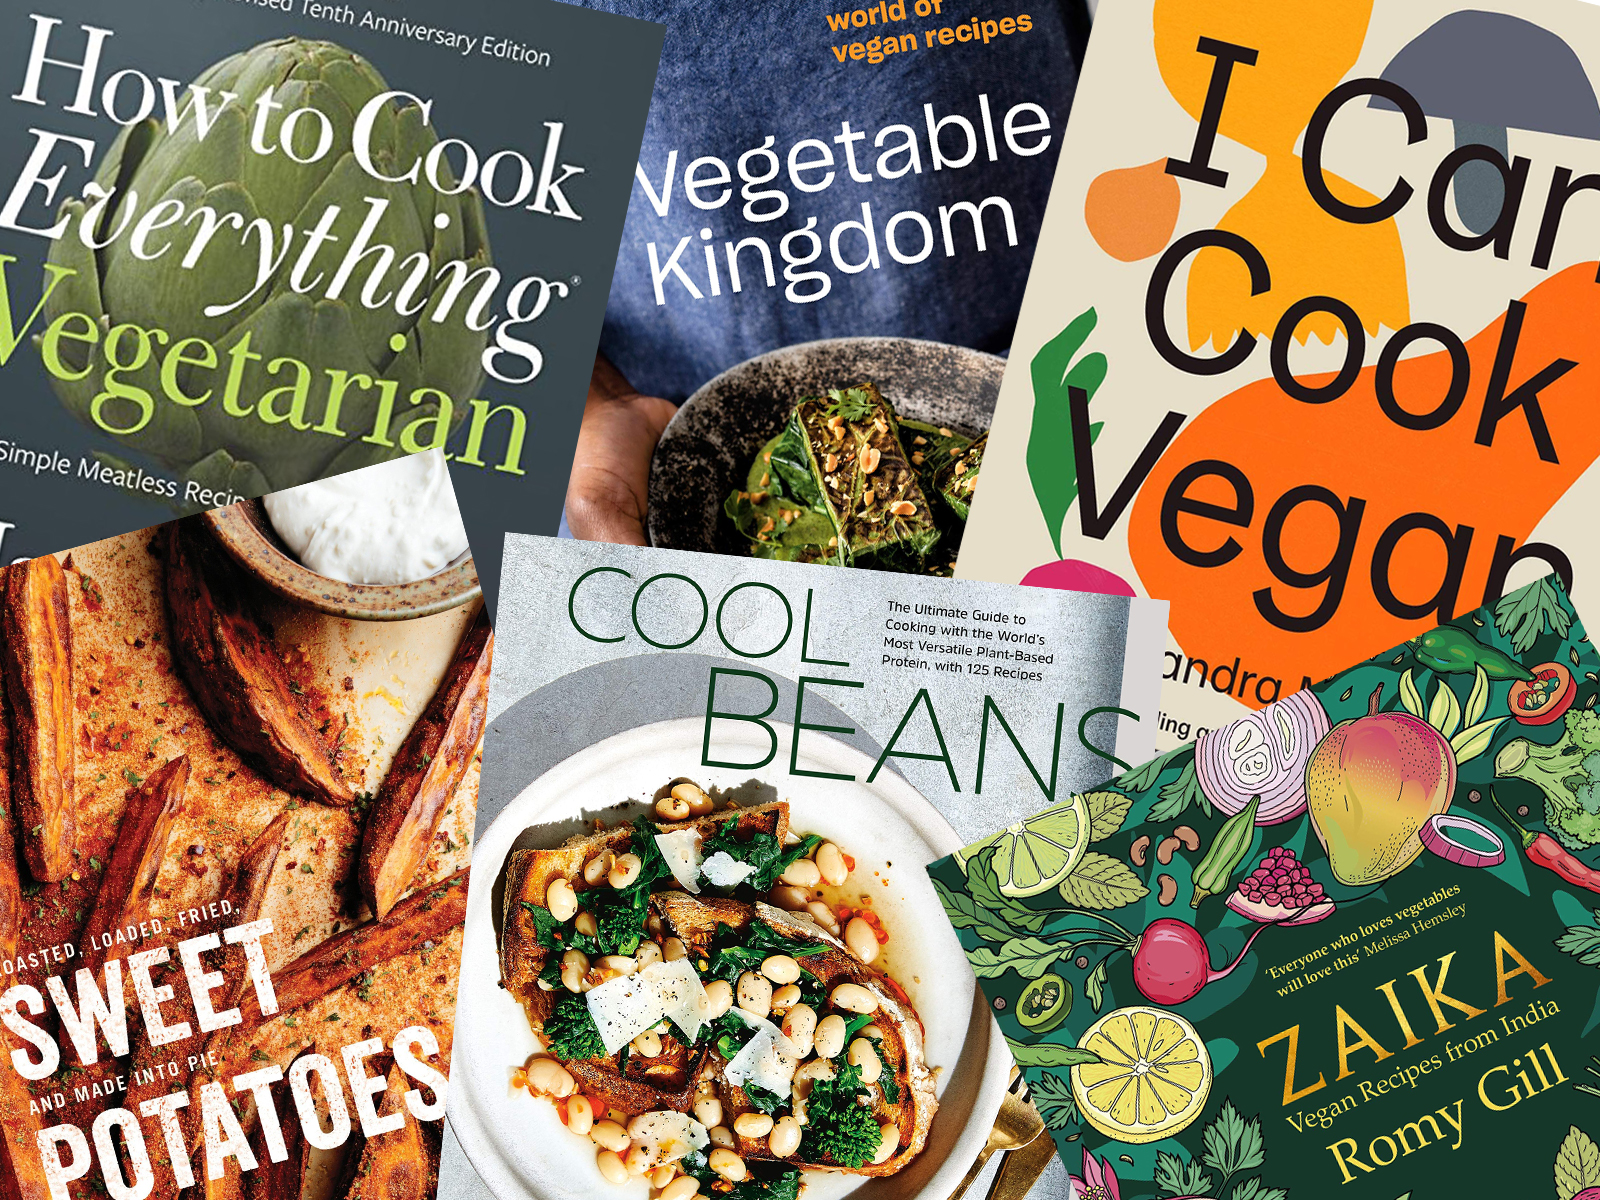 Vegetarian Cookbooks 2020